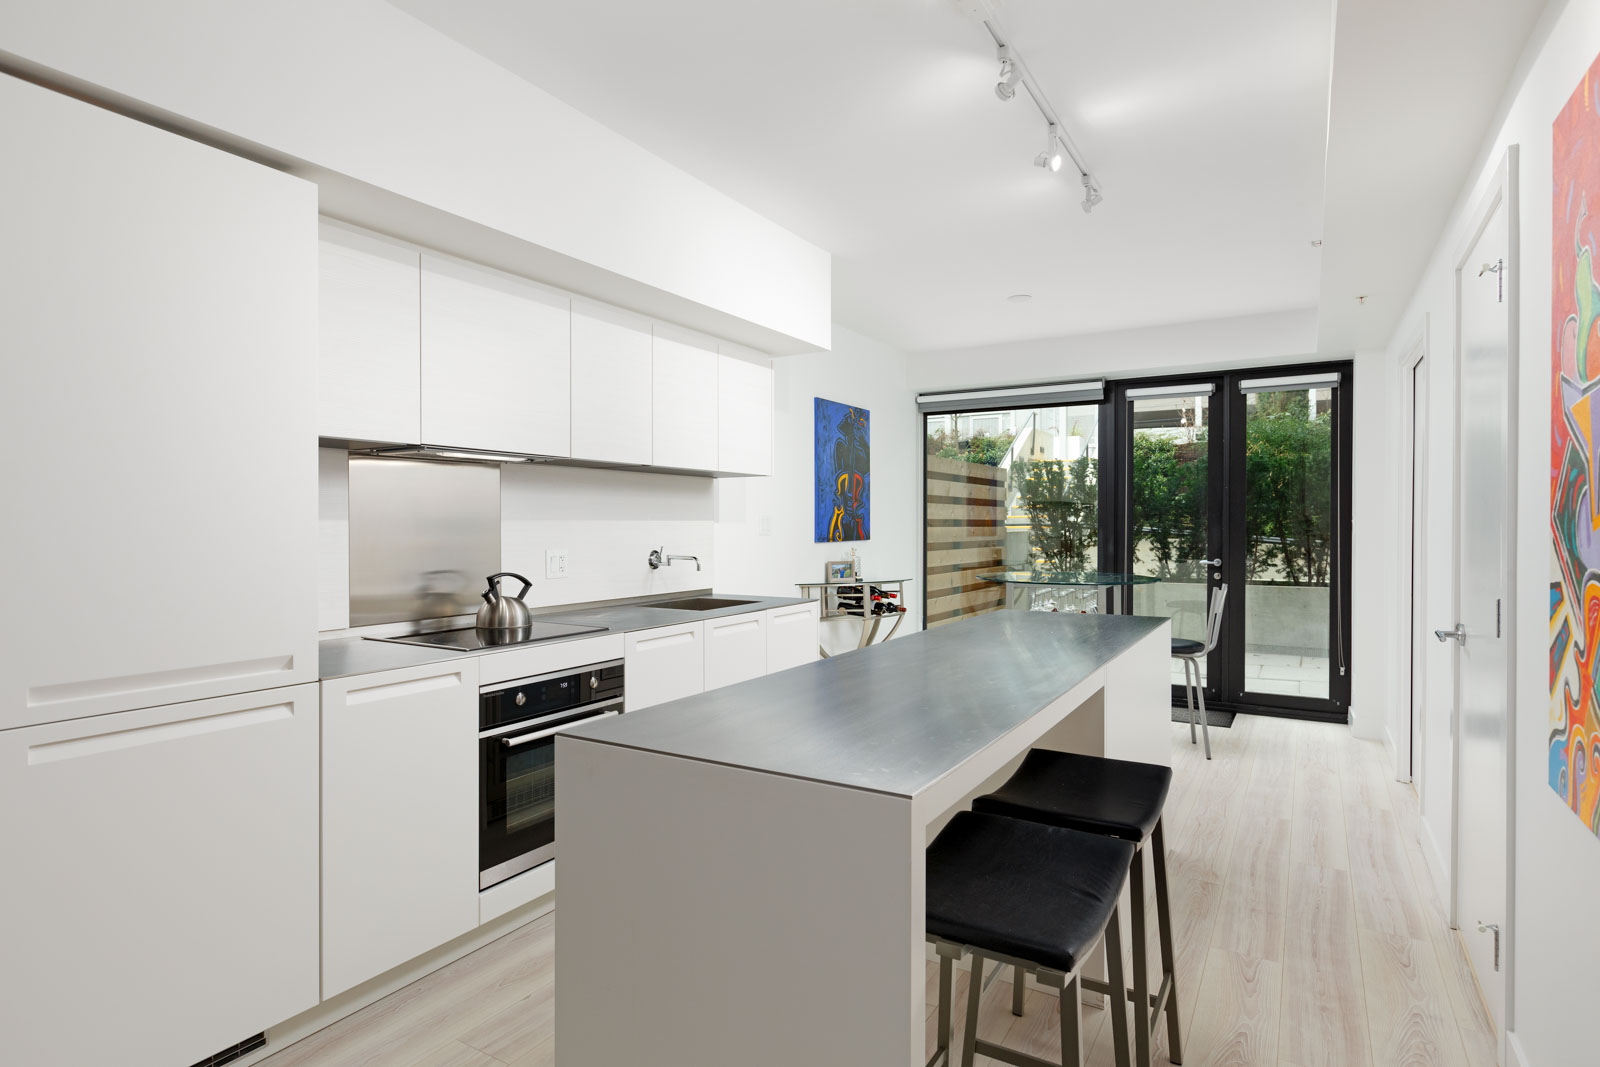 Kitchen and dining area at Downtown Vancouver condo rental managed by Birds Nest Properties.